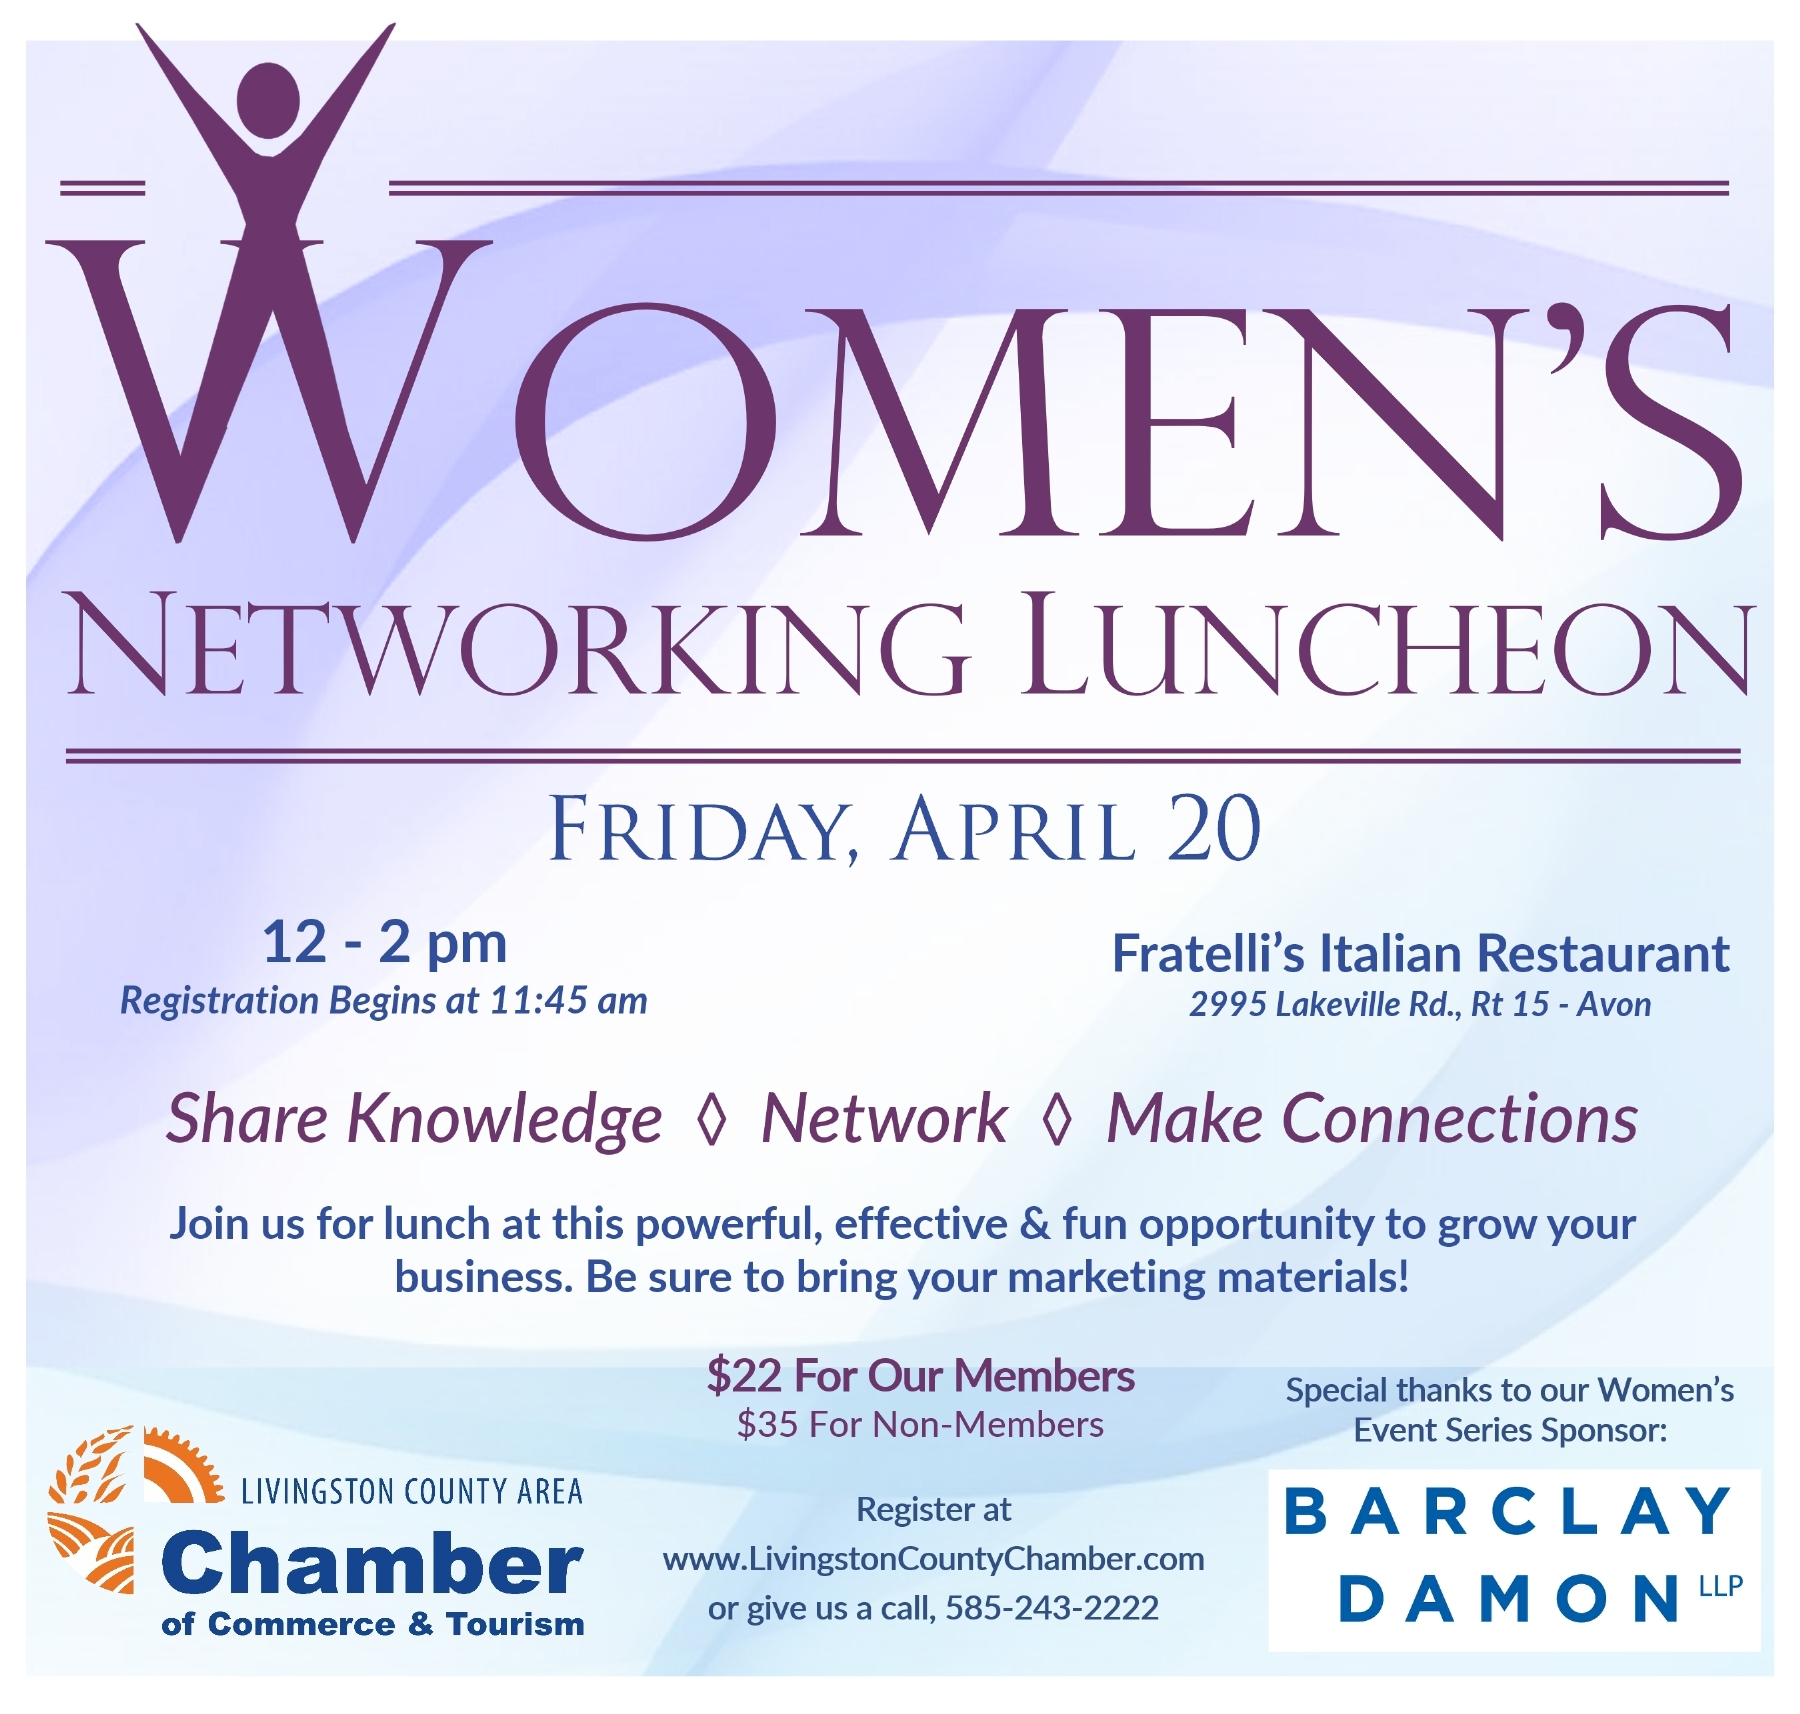 Livingston County Chamber of Commerce - Women's Networking Luncheon, April 20, 2018